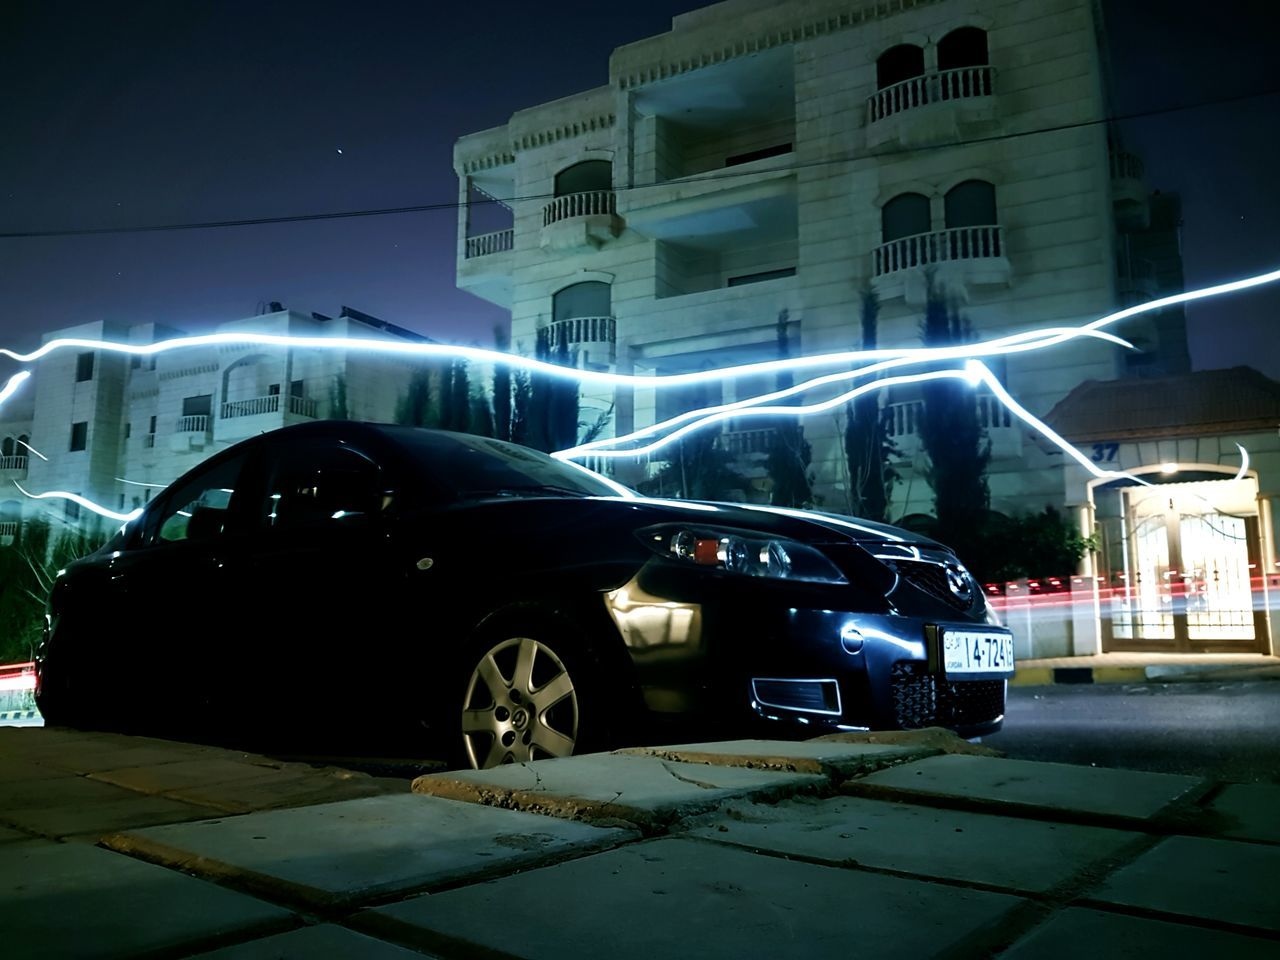 car, night, transportation, land vehicle, illuminated, mode of transport, building exterior, built structure, architecture, outdoors, city, road, no people, sky